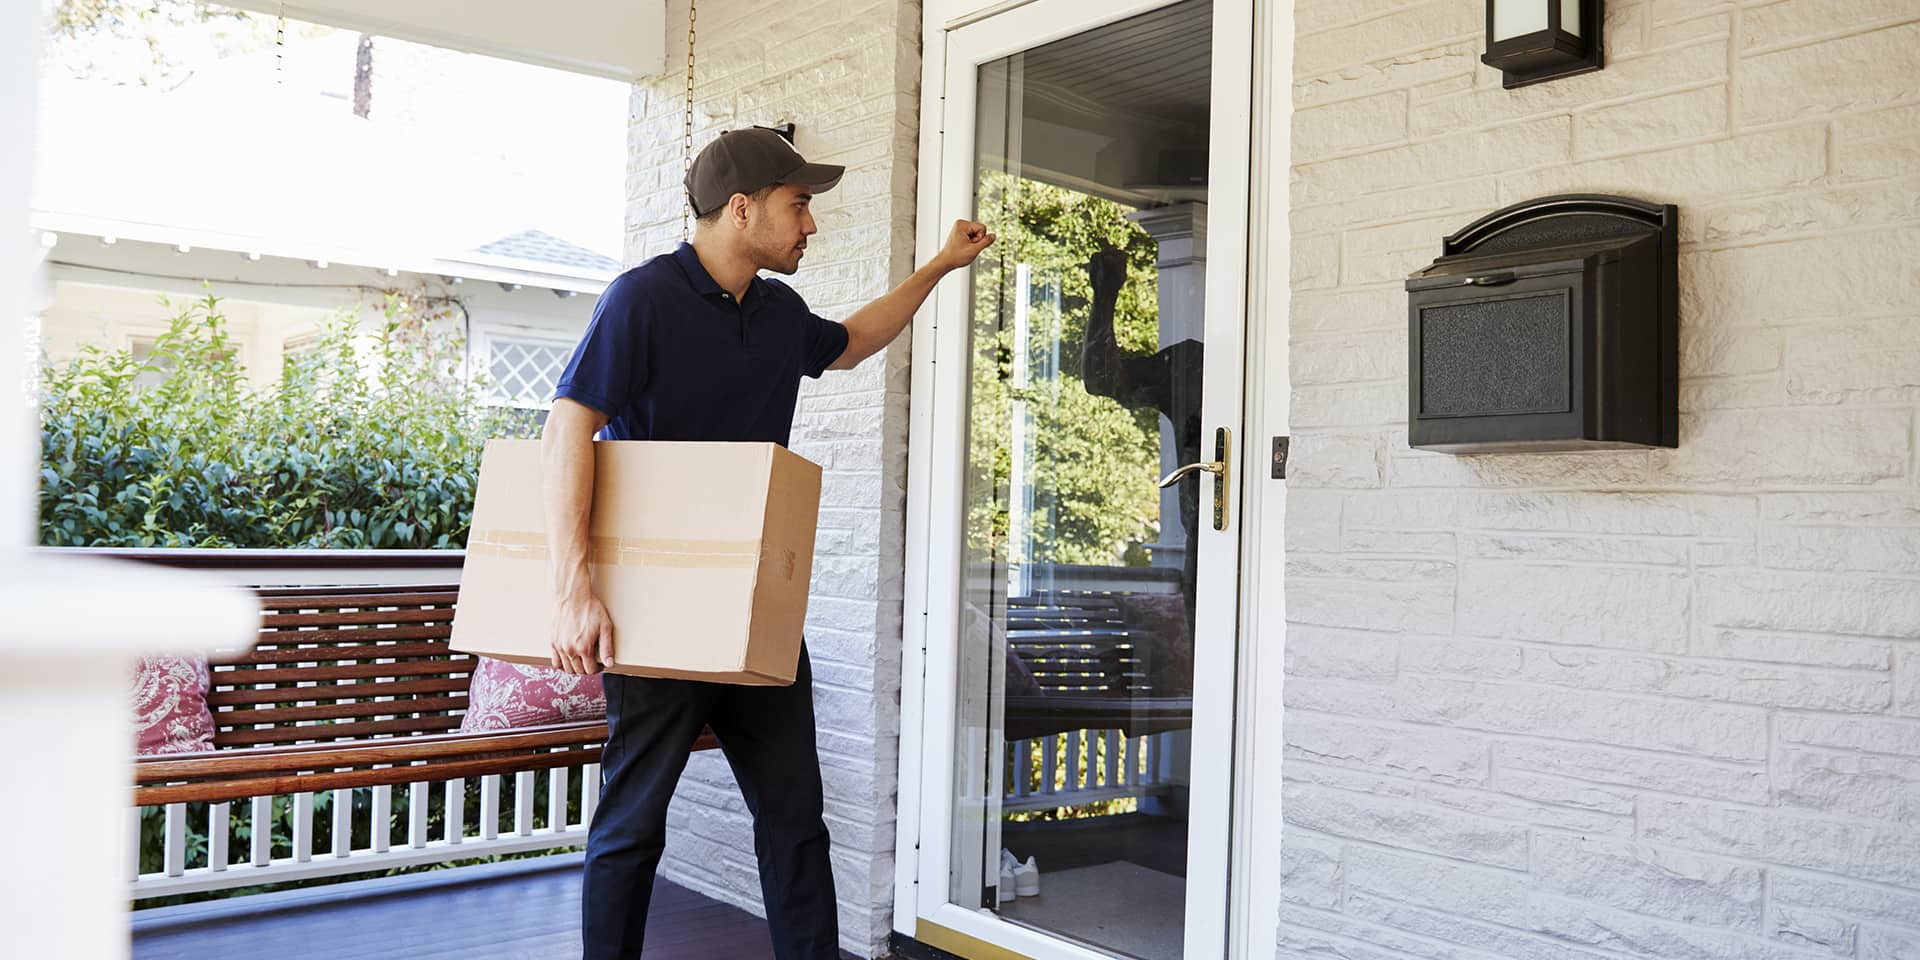 man with box home delivery